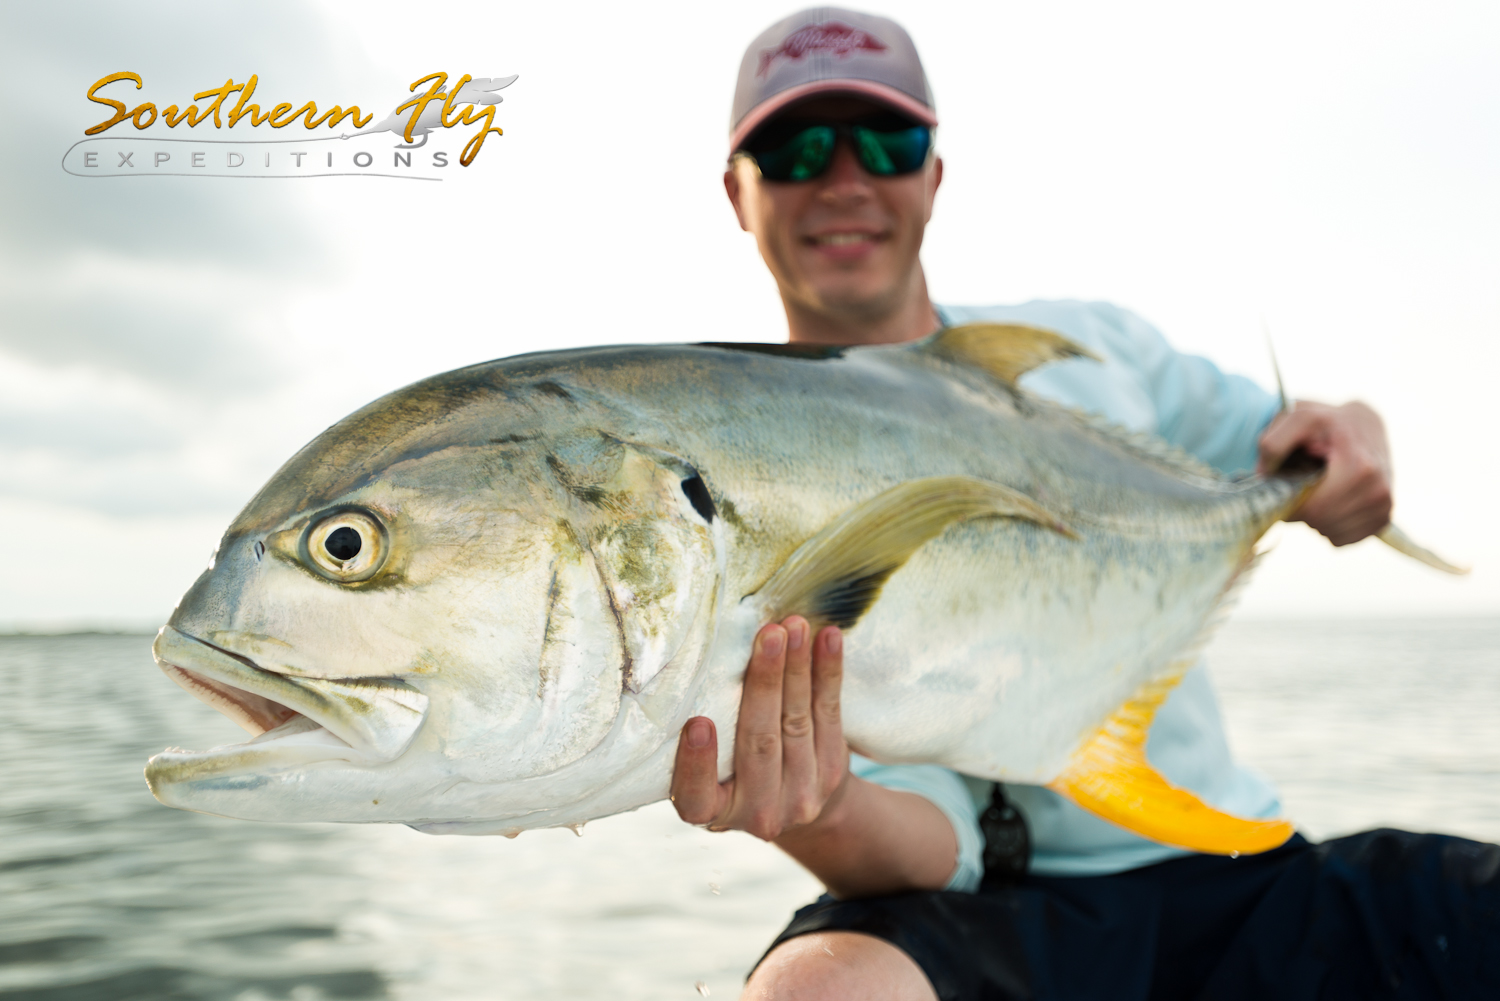 Fly Fishing Louisiana September 2015 Photos From Southern Fly Expeditions